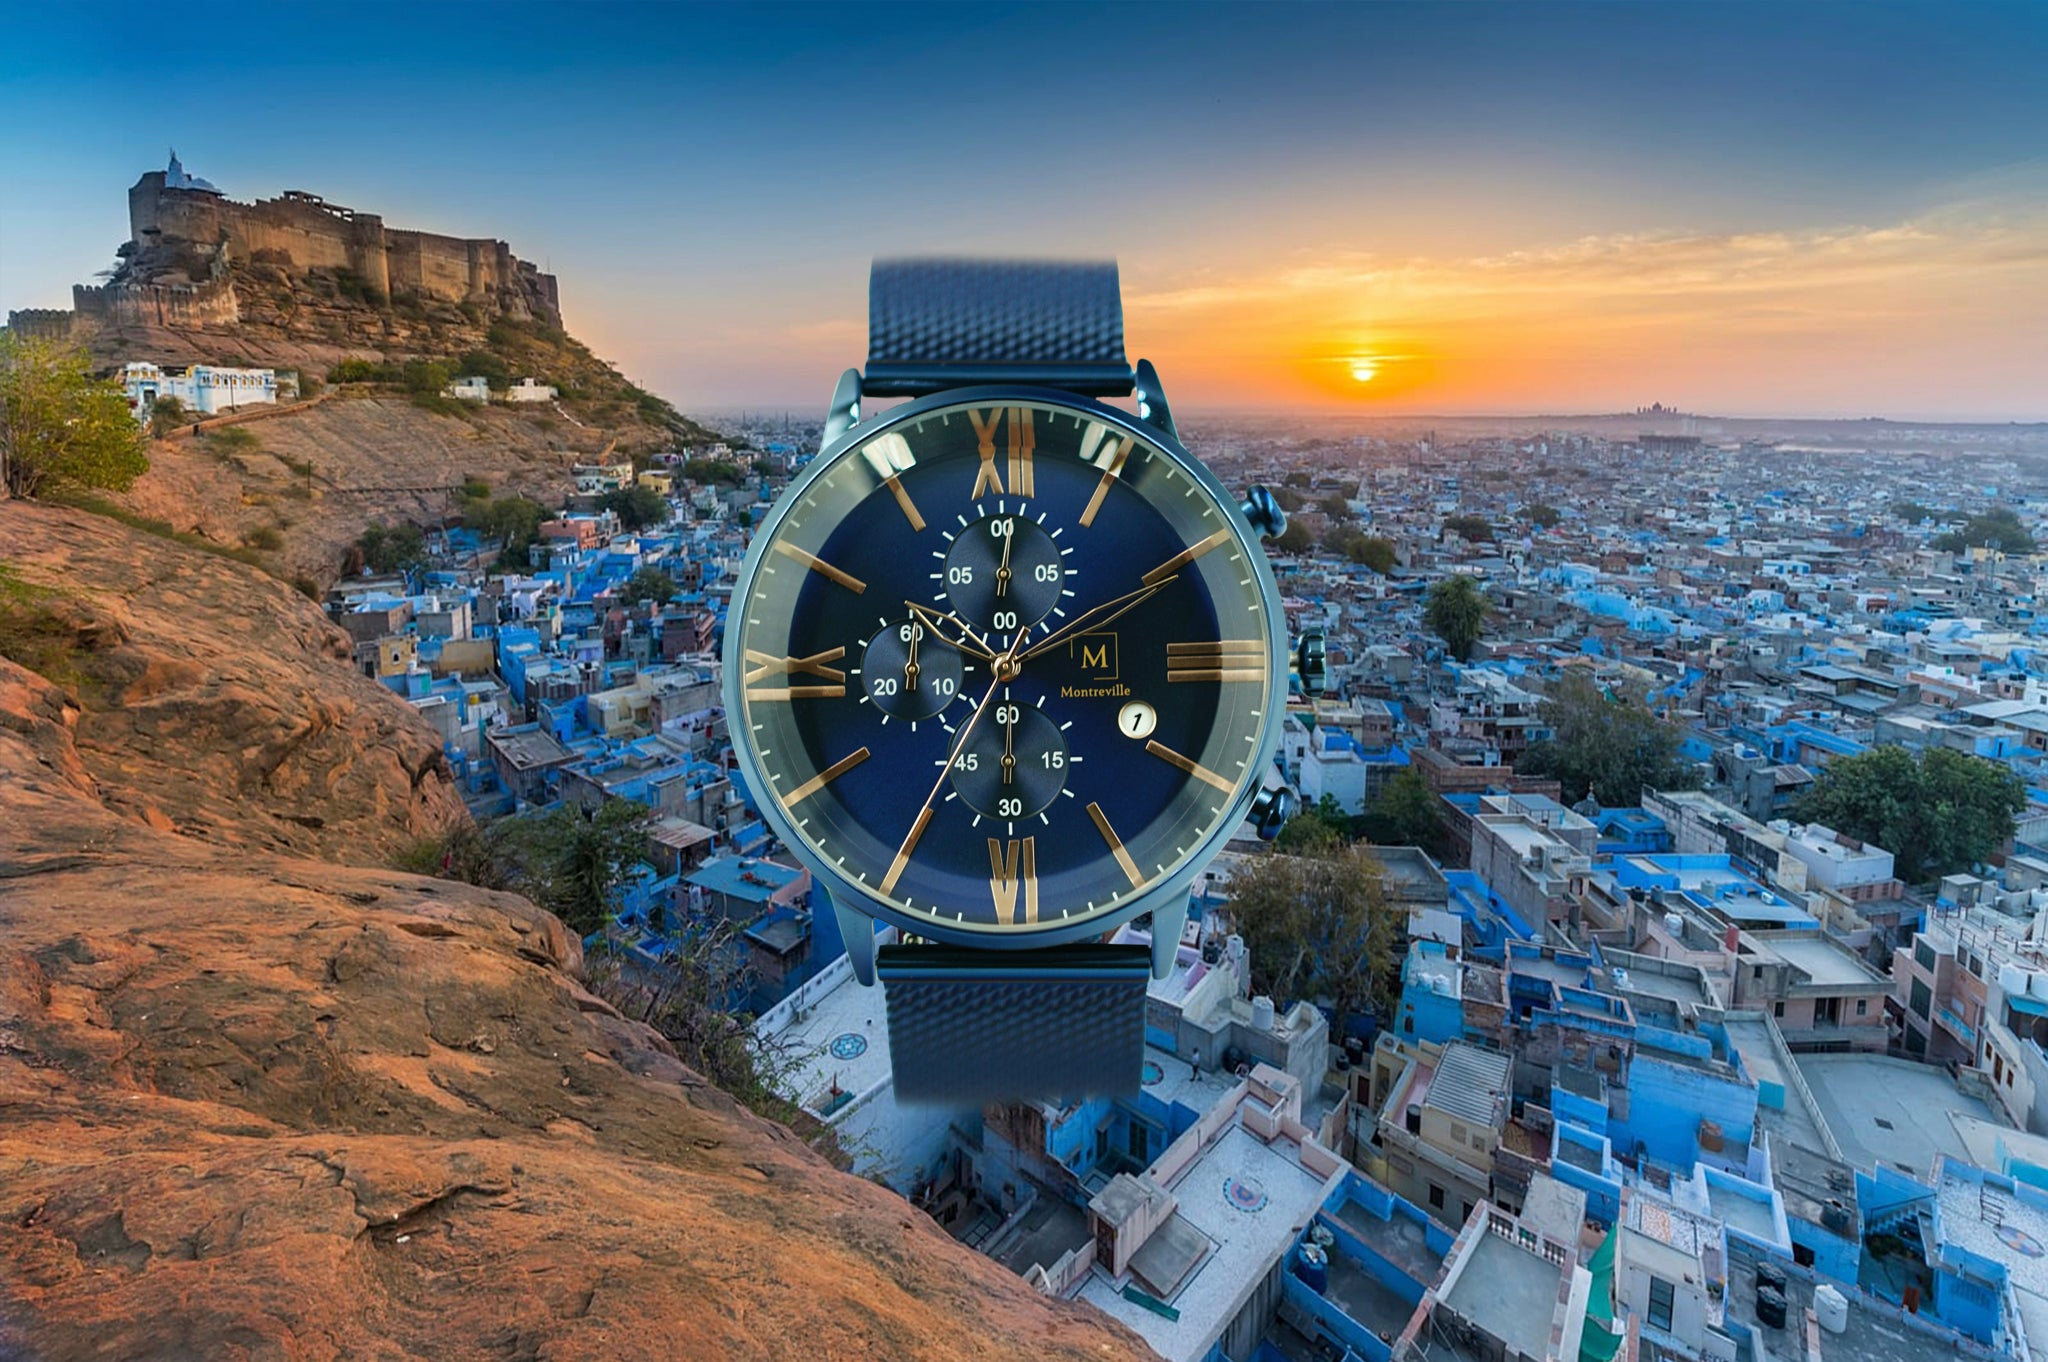 Blue watch called Jodhpur from the brand Montreville. This is an image of the watch with a picture of the city of Jodhpur in the background. The timepiece has a unique design with a large glass, roman numerals in rosé gold, a stopwatch and date. The Jodhpur timepiece has a mesh strap in blue.